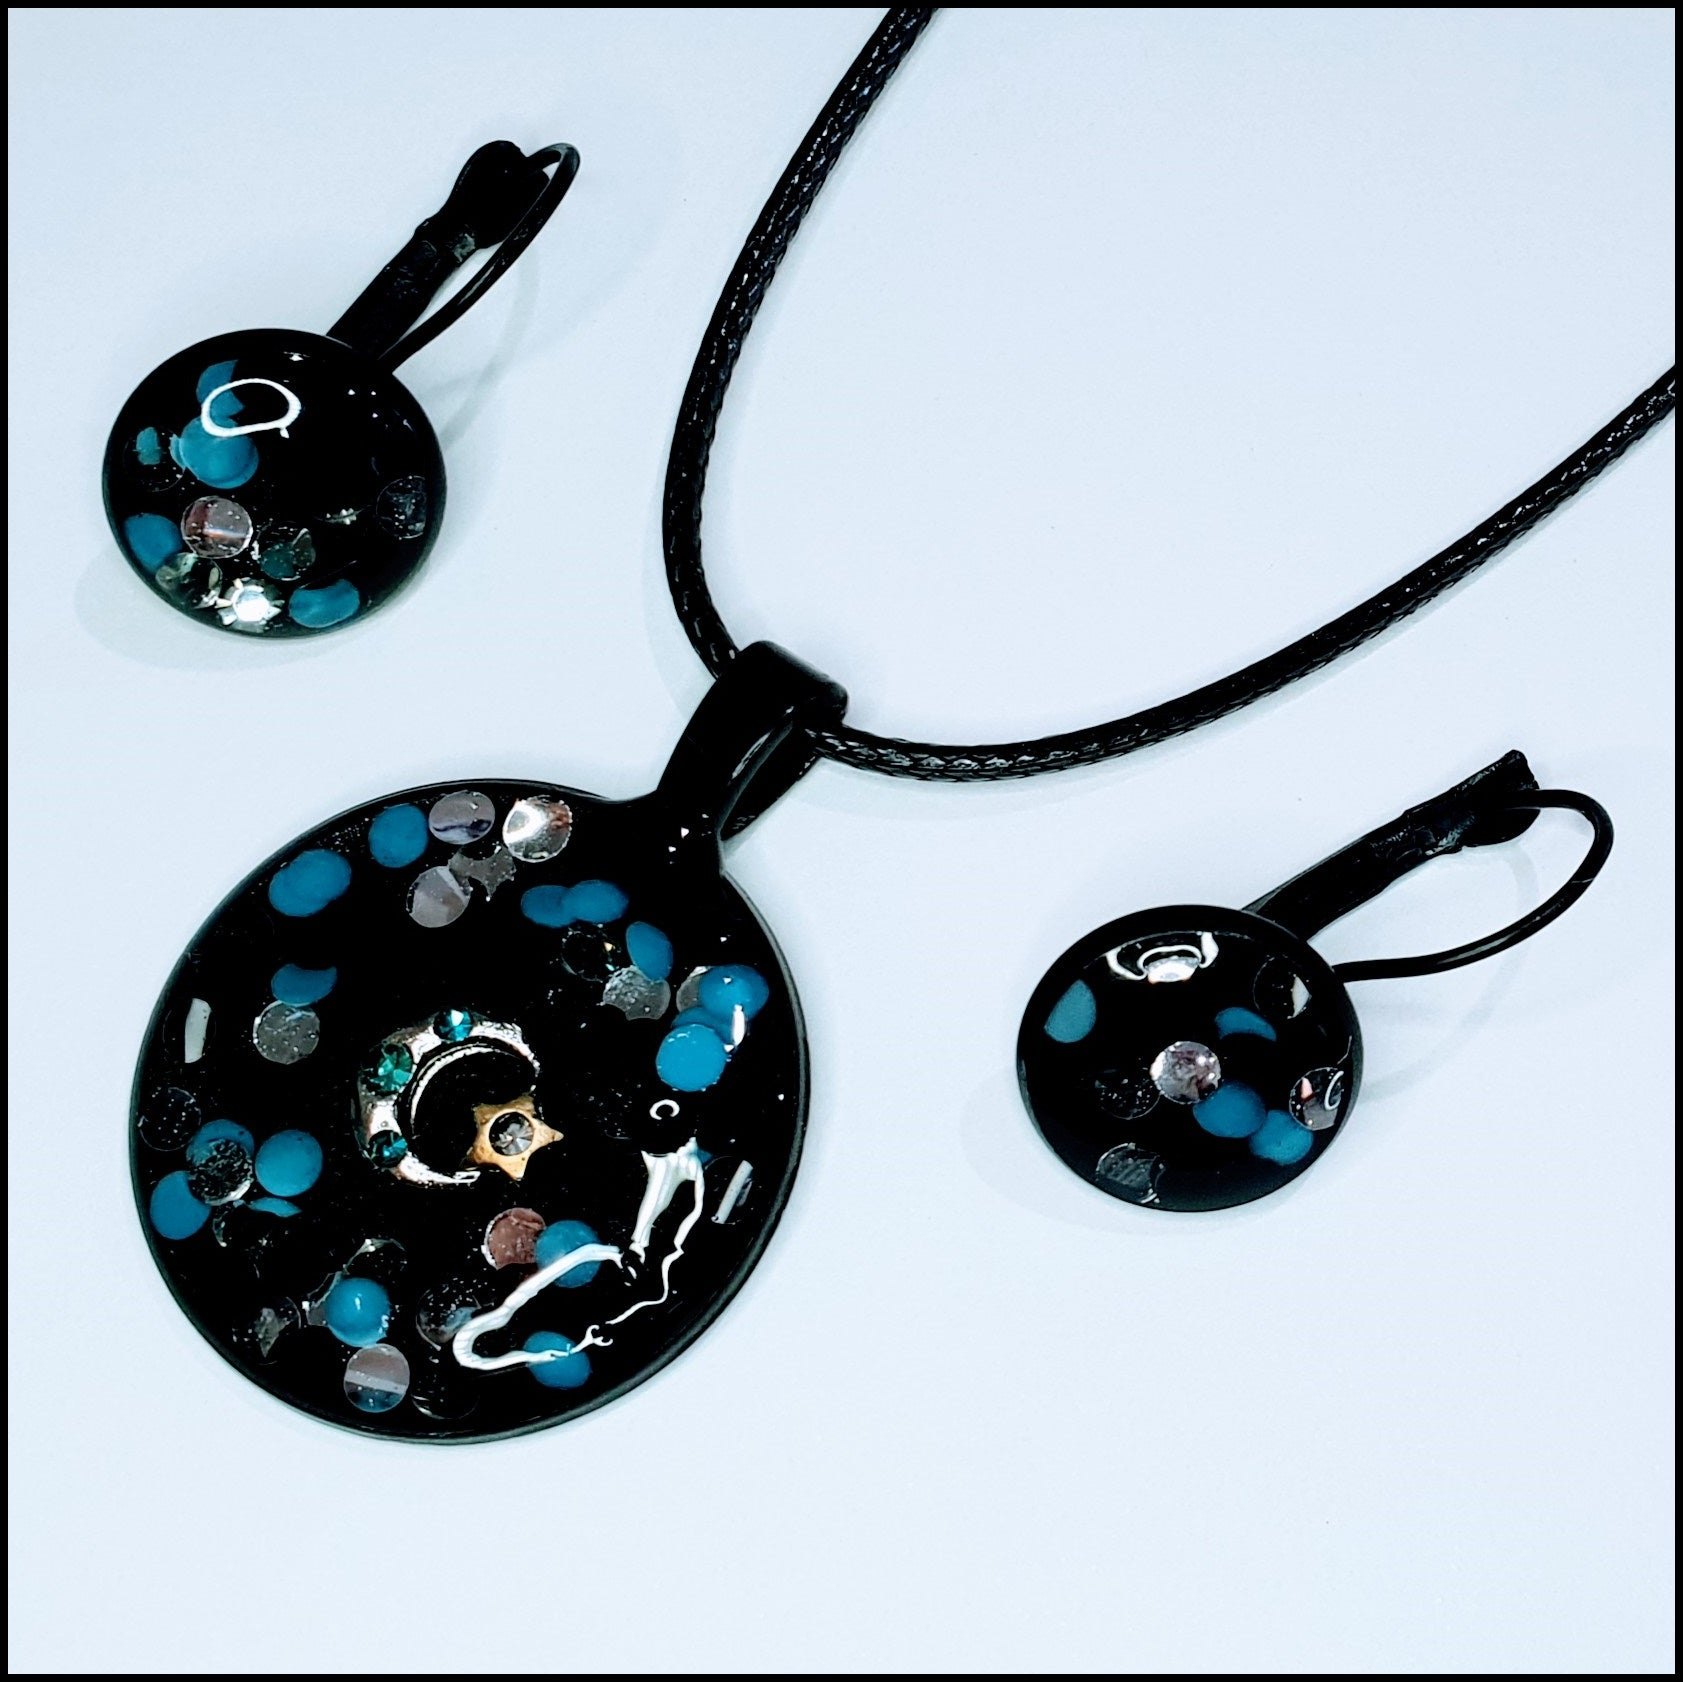 Handmade Resin Pendant and Earring Set - Black/Teal with Moon